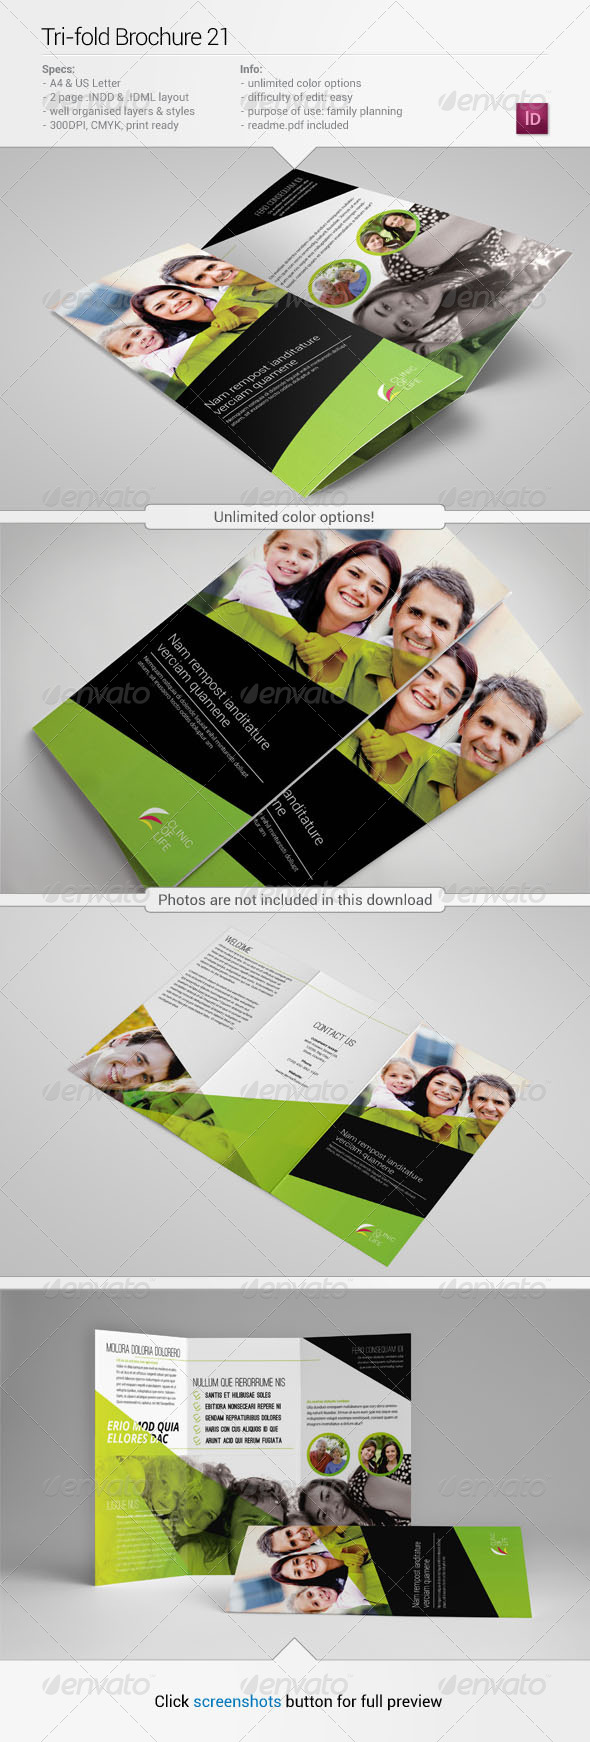 GraphicRiver Tri-Fold Brochure 21 5986779